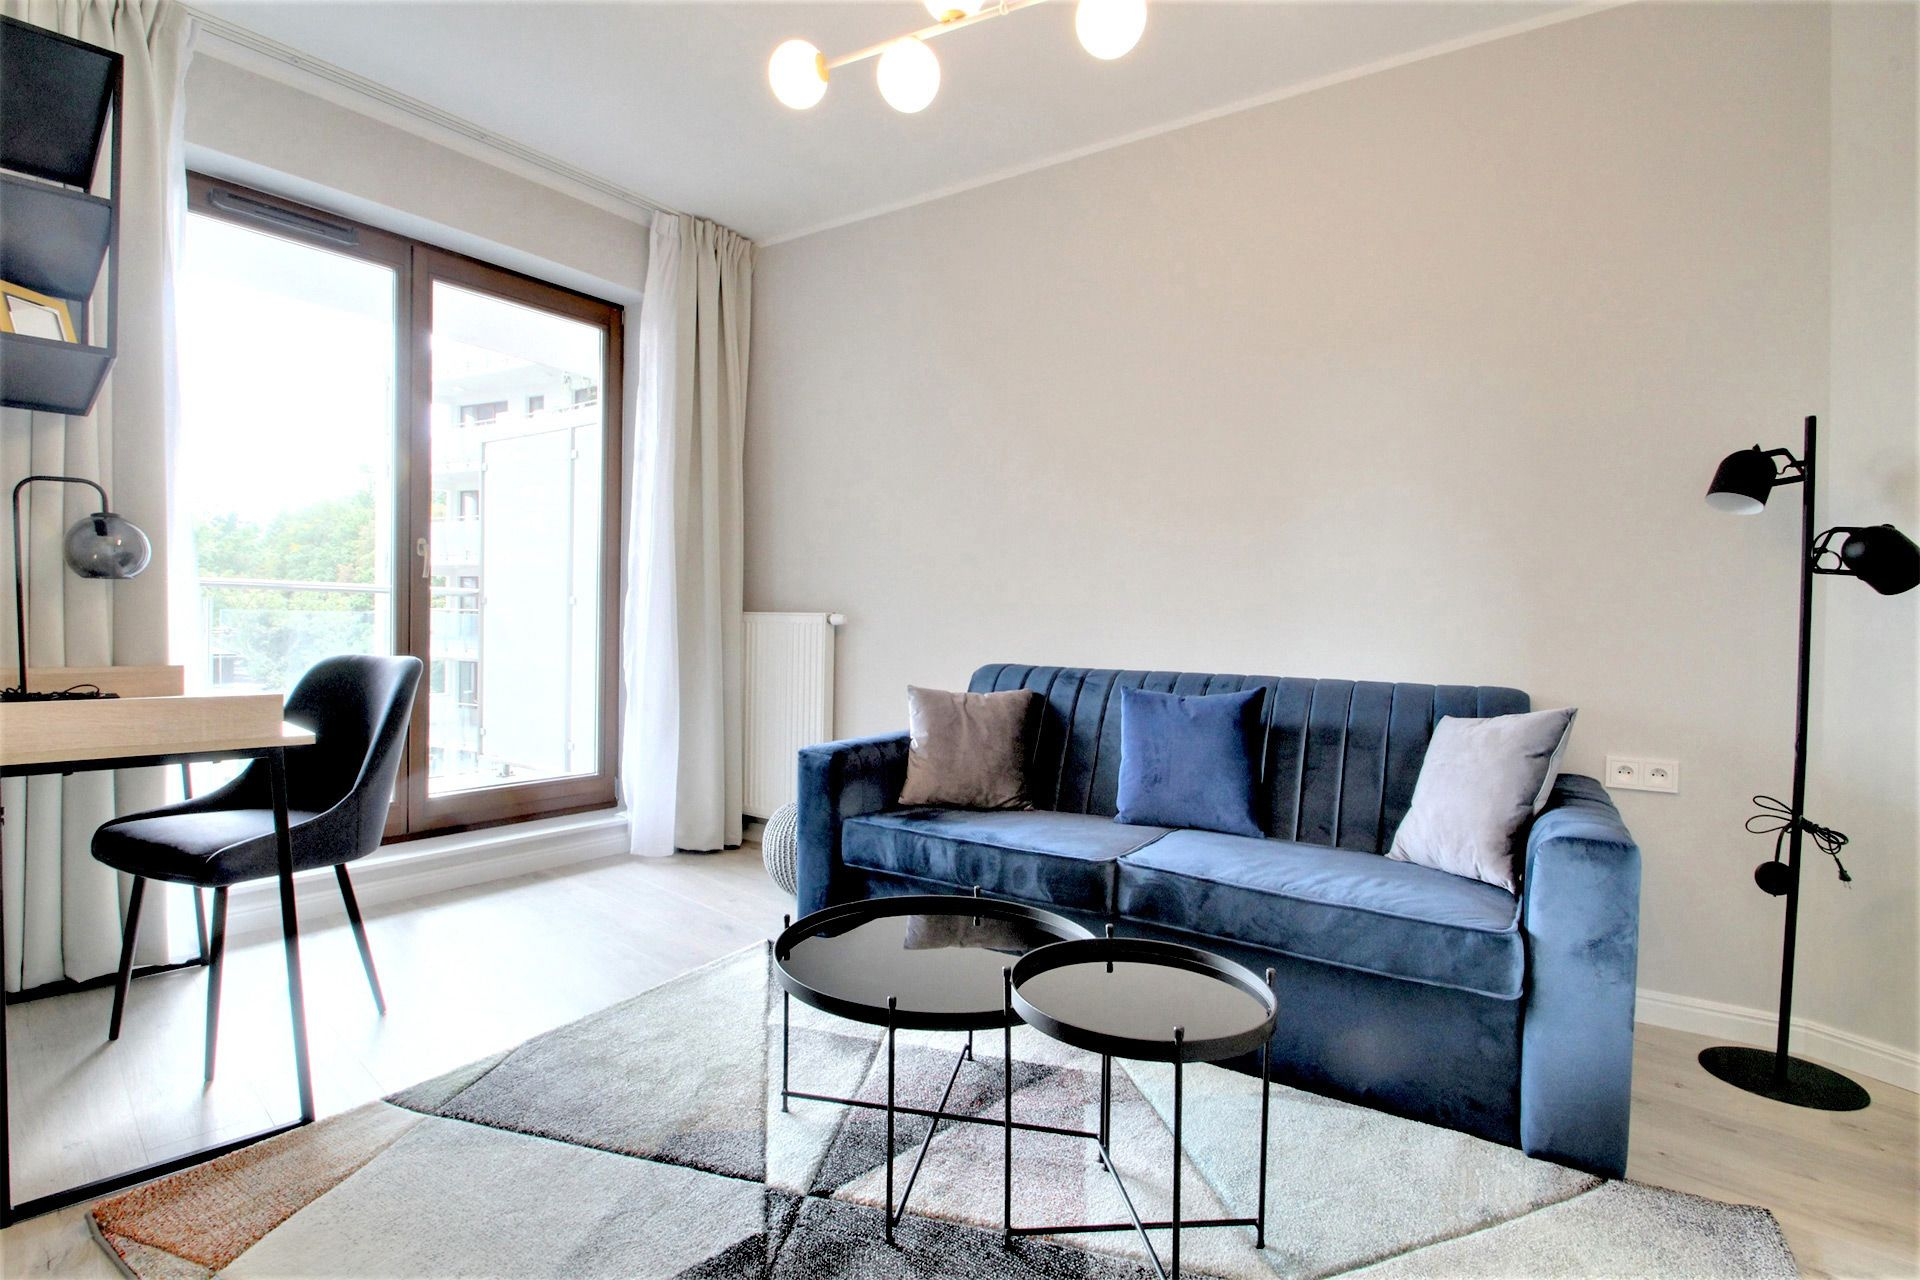 2 Bedroom - Medium apartment to rent in Warsaw UPR-A-037-3